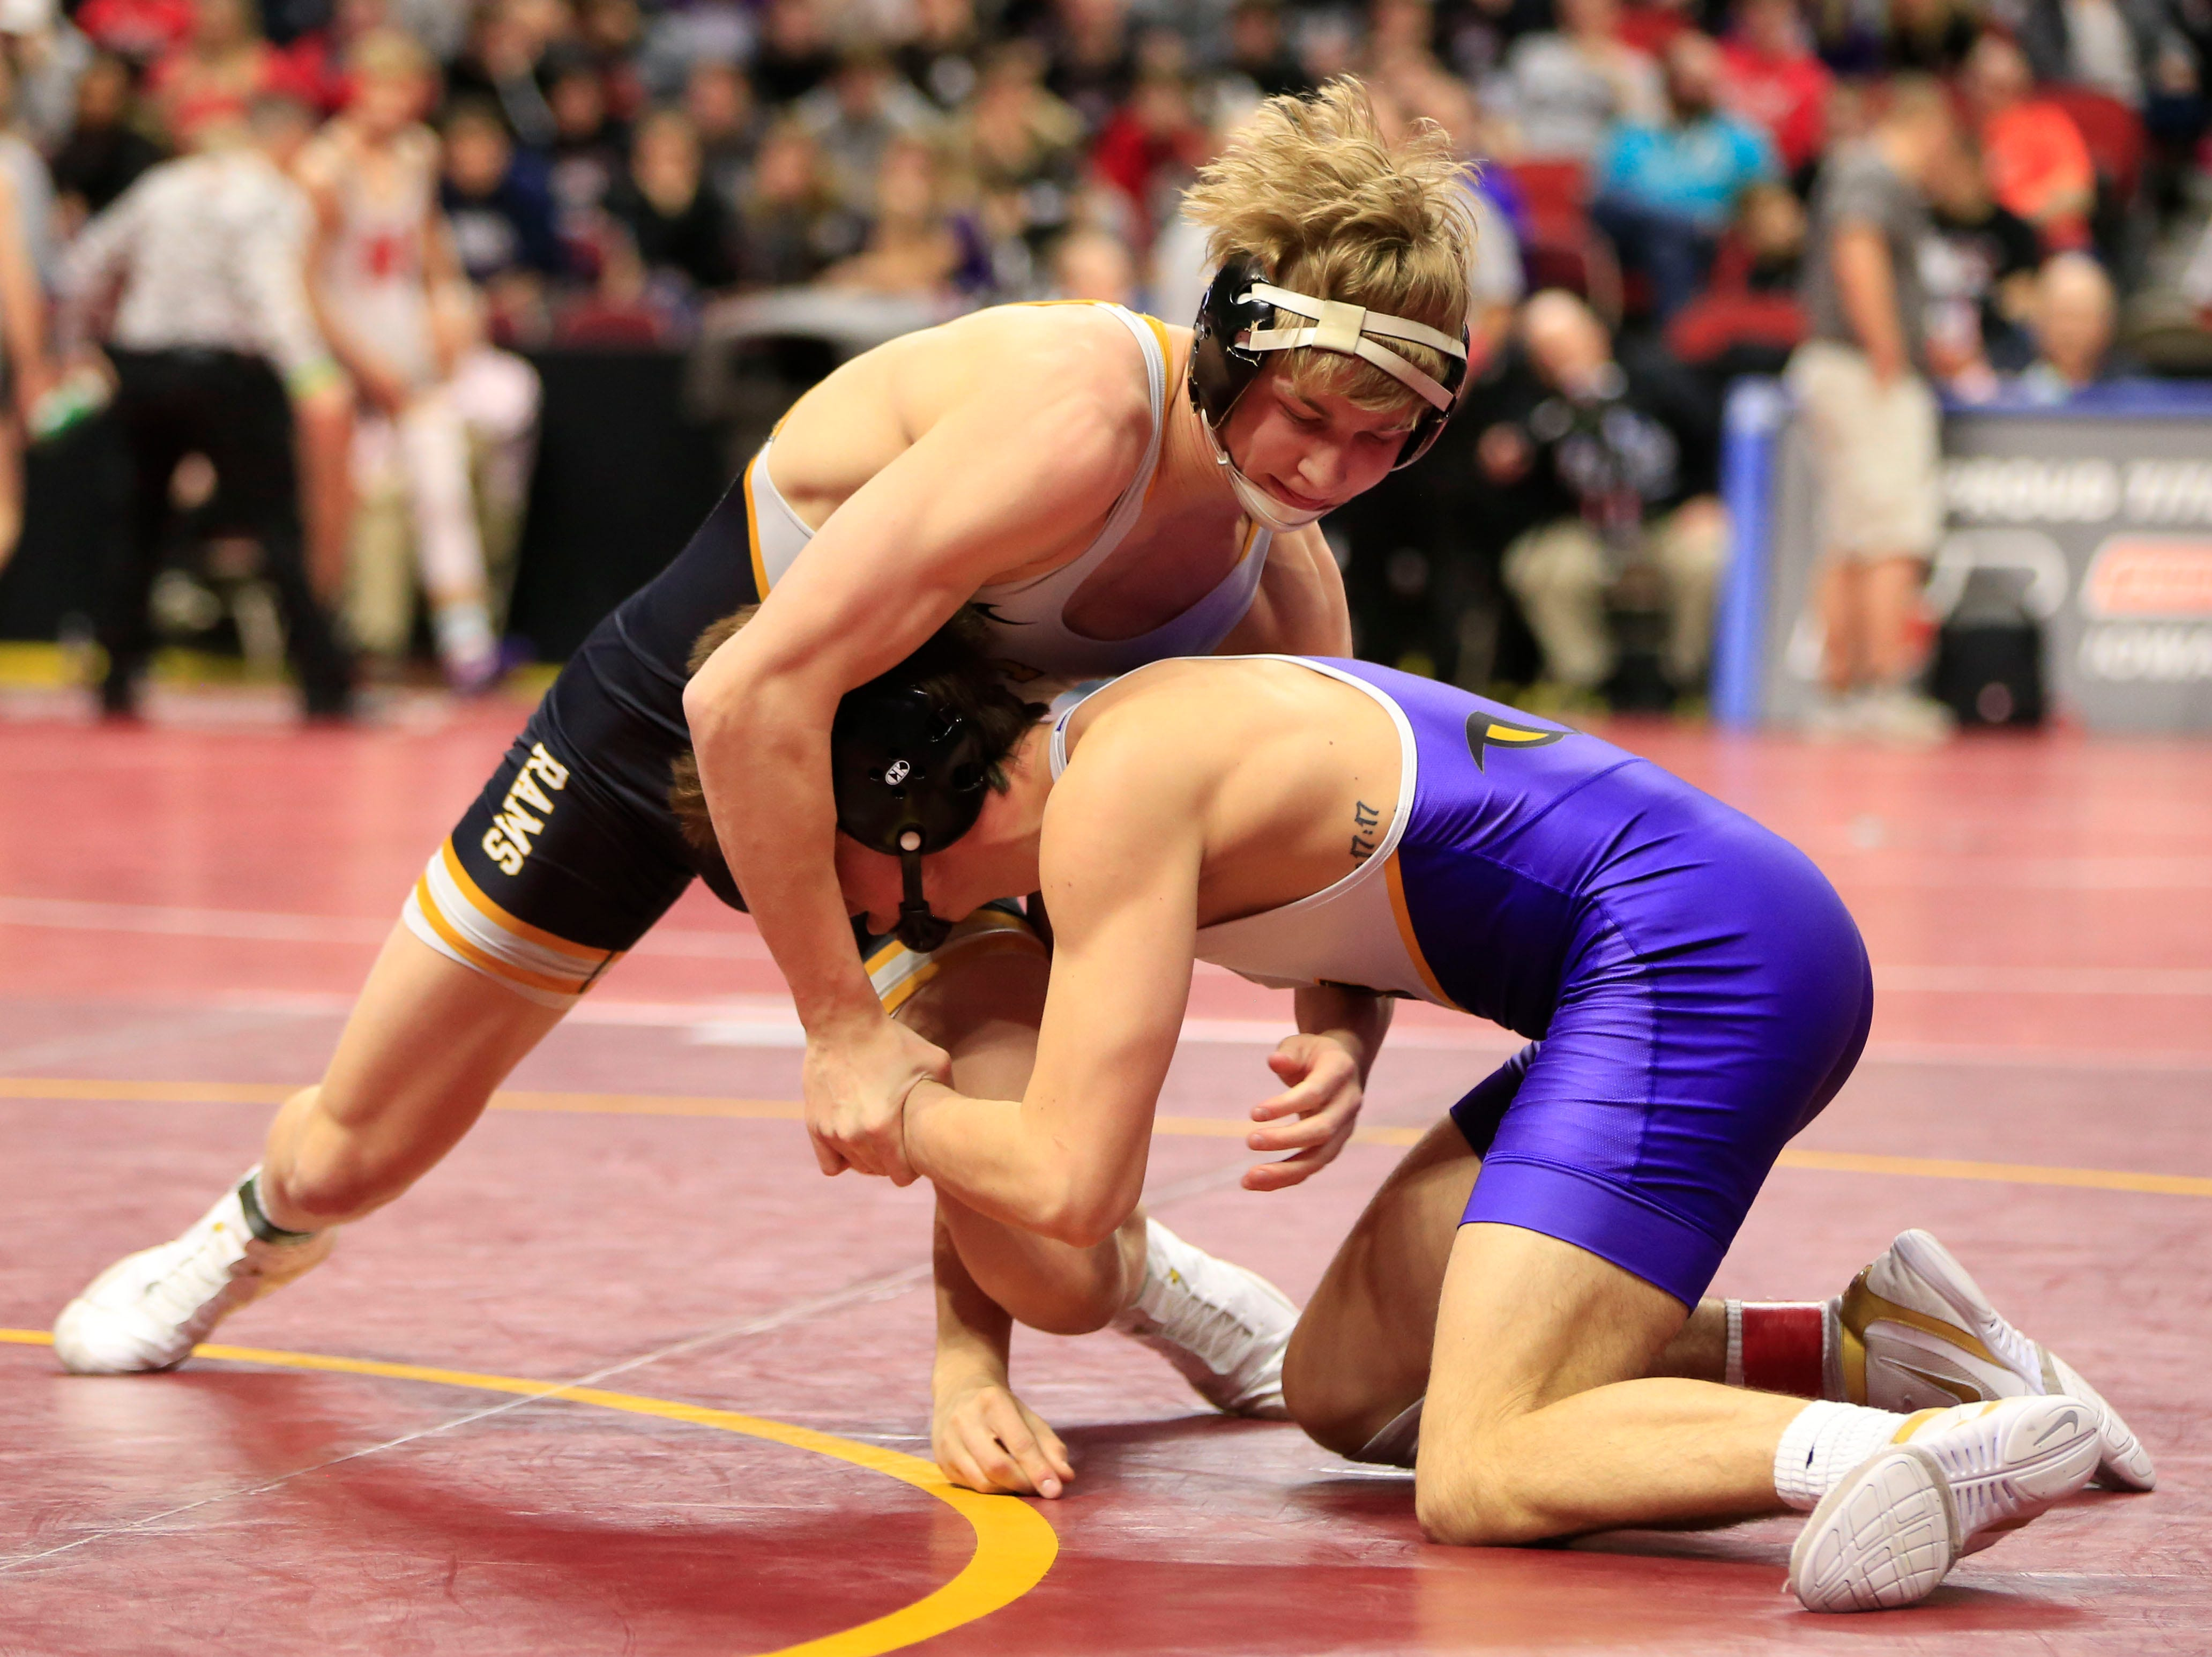 Lance Runyon of Southeast Polk defeats Cade Moss of Johnston during a 152 Lb 3A semifinal match at the state wrestling tournament Friday, Feb. 15, 2019.